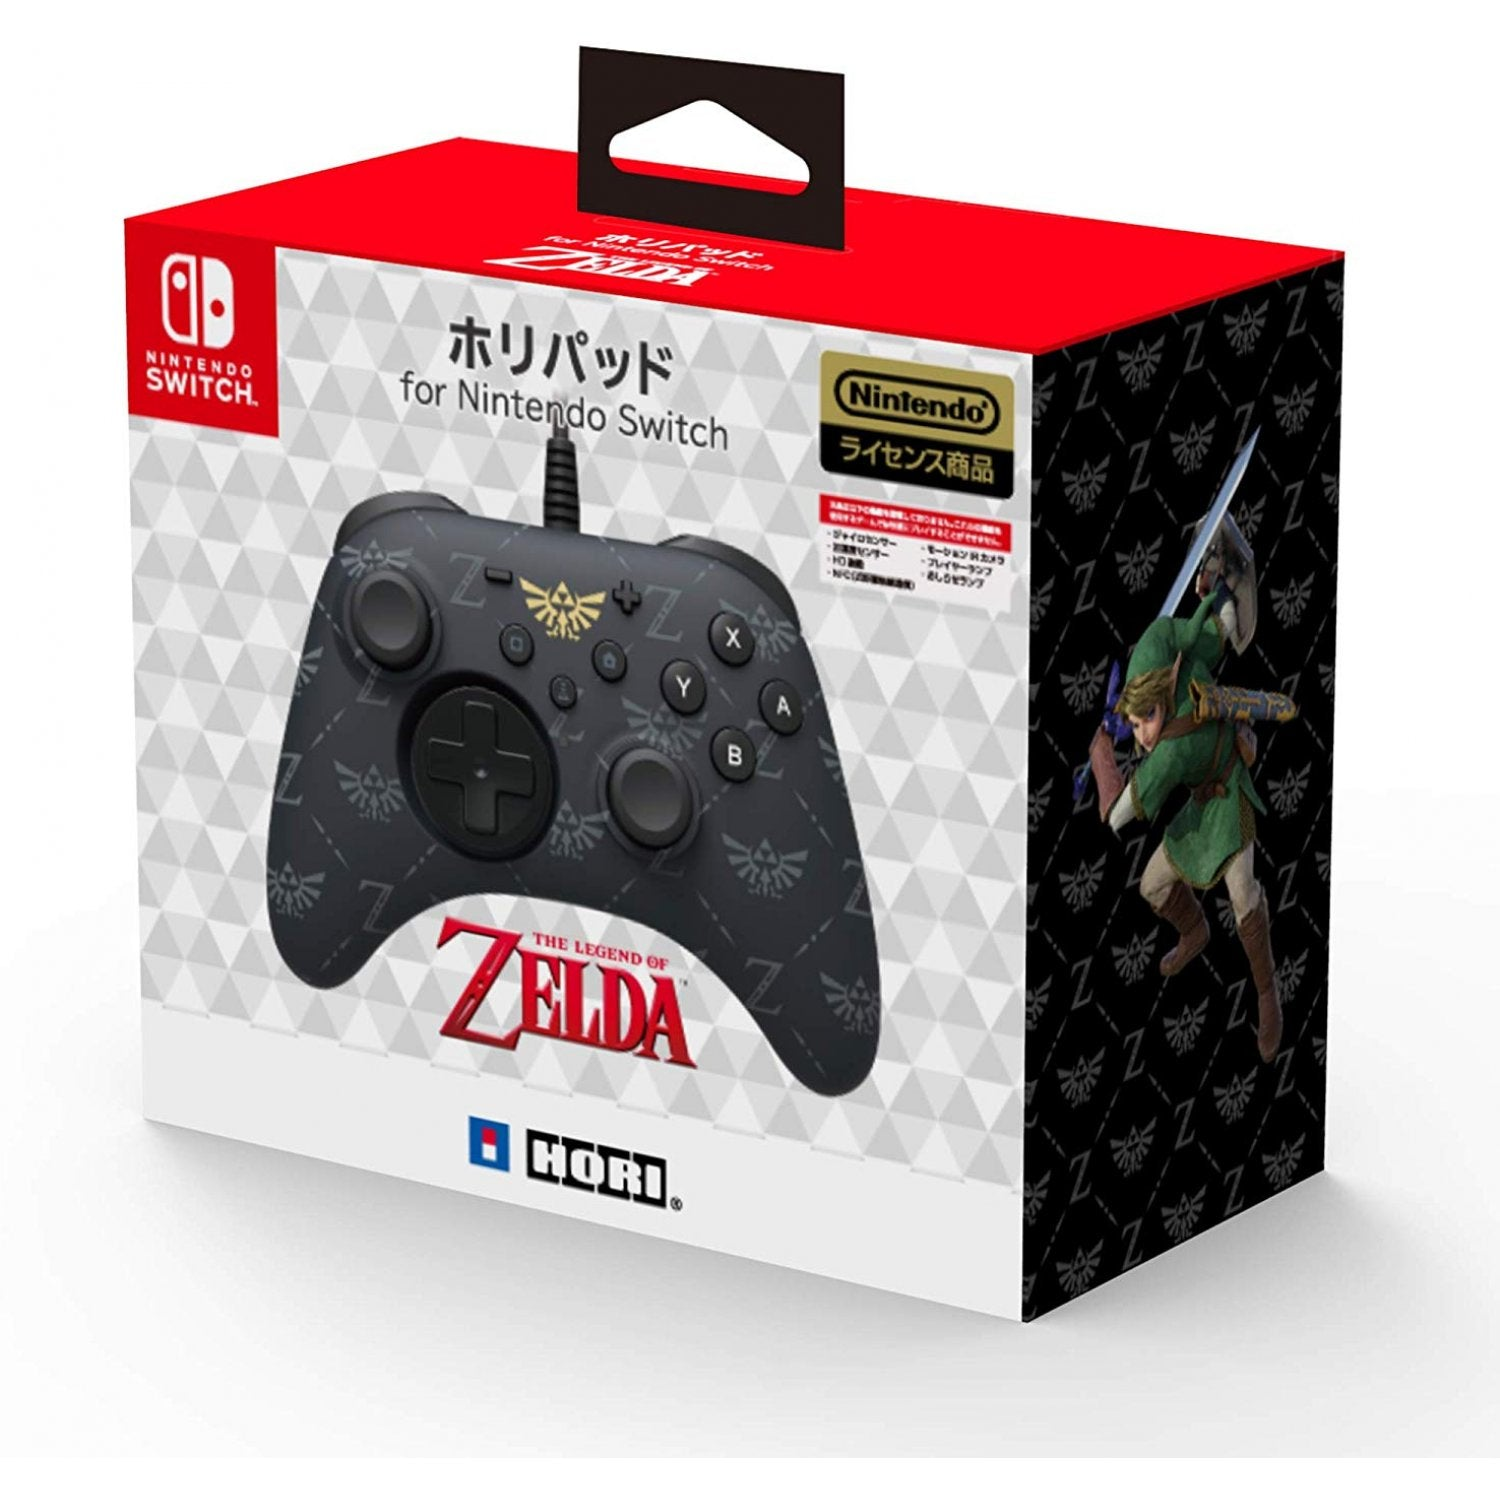 Hori Pad for Nintendo Switch (The Legend of Zelda)